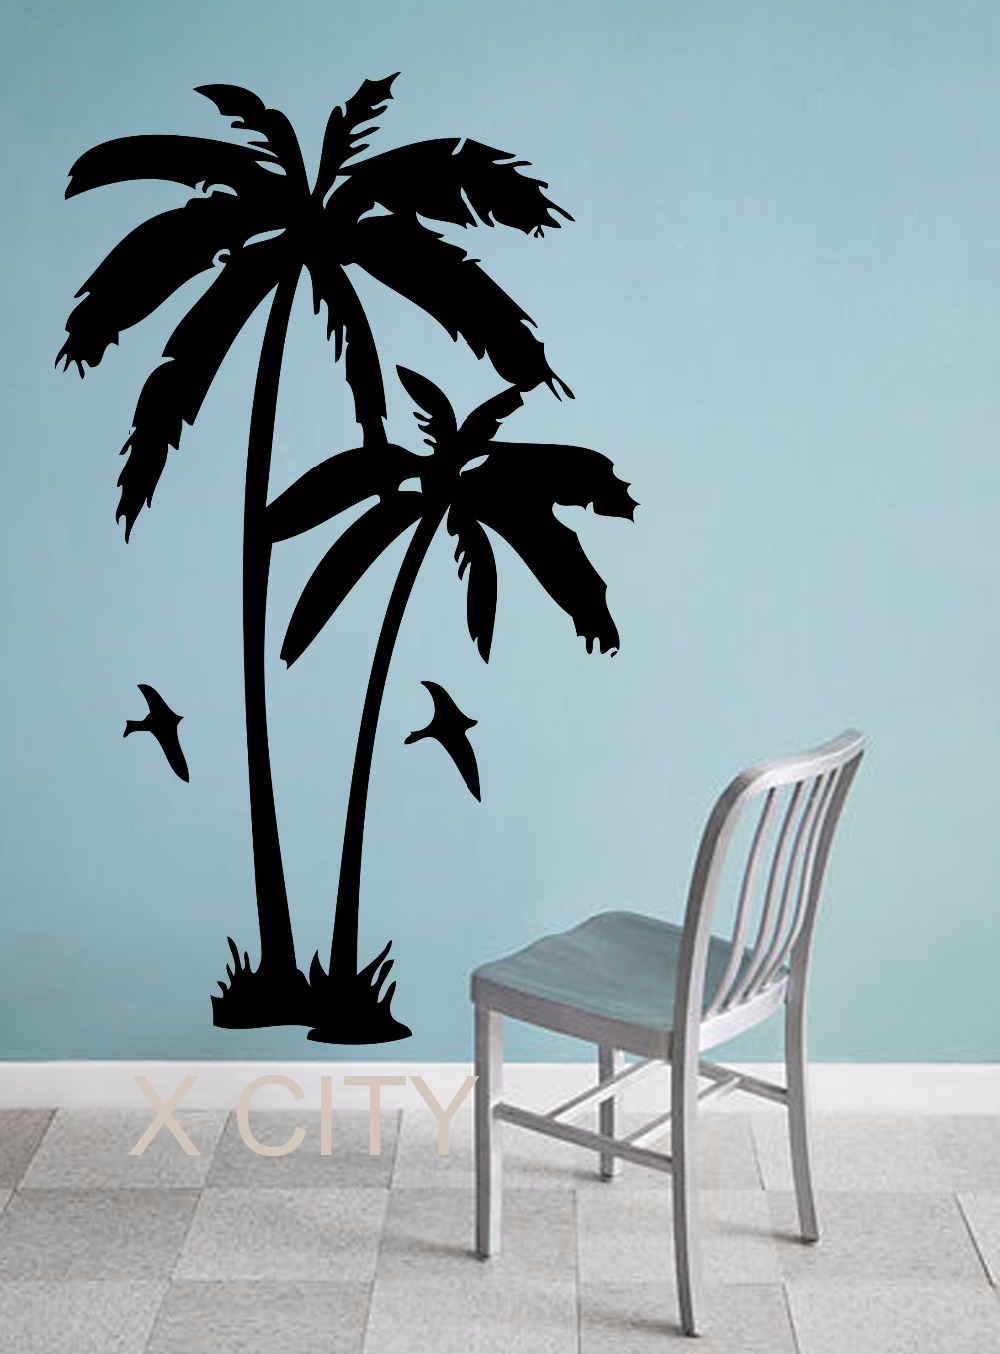 Palm Trees Tropic Landscape Giant Wall Sticker Vinyl Art Decal ... for Wall Sticker Tree Silhouette  193tgx